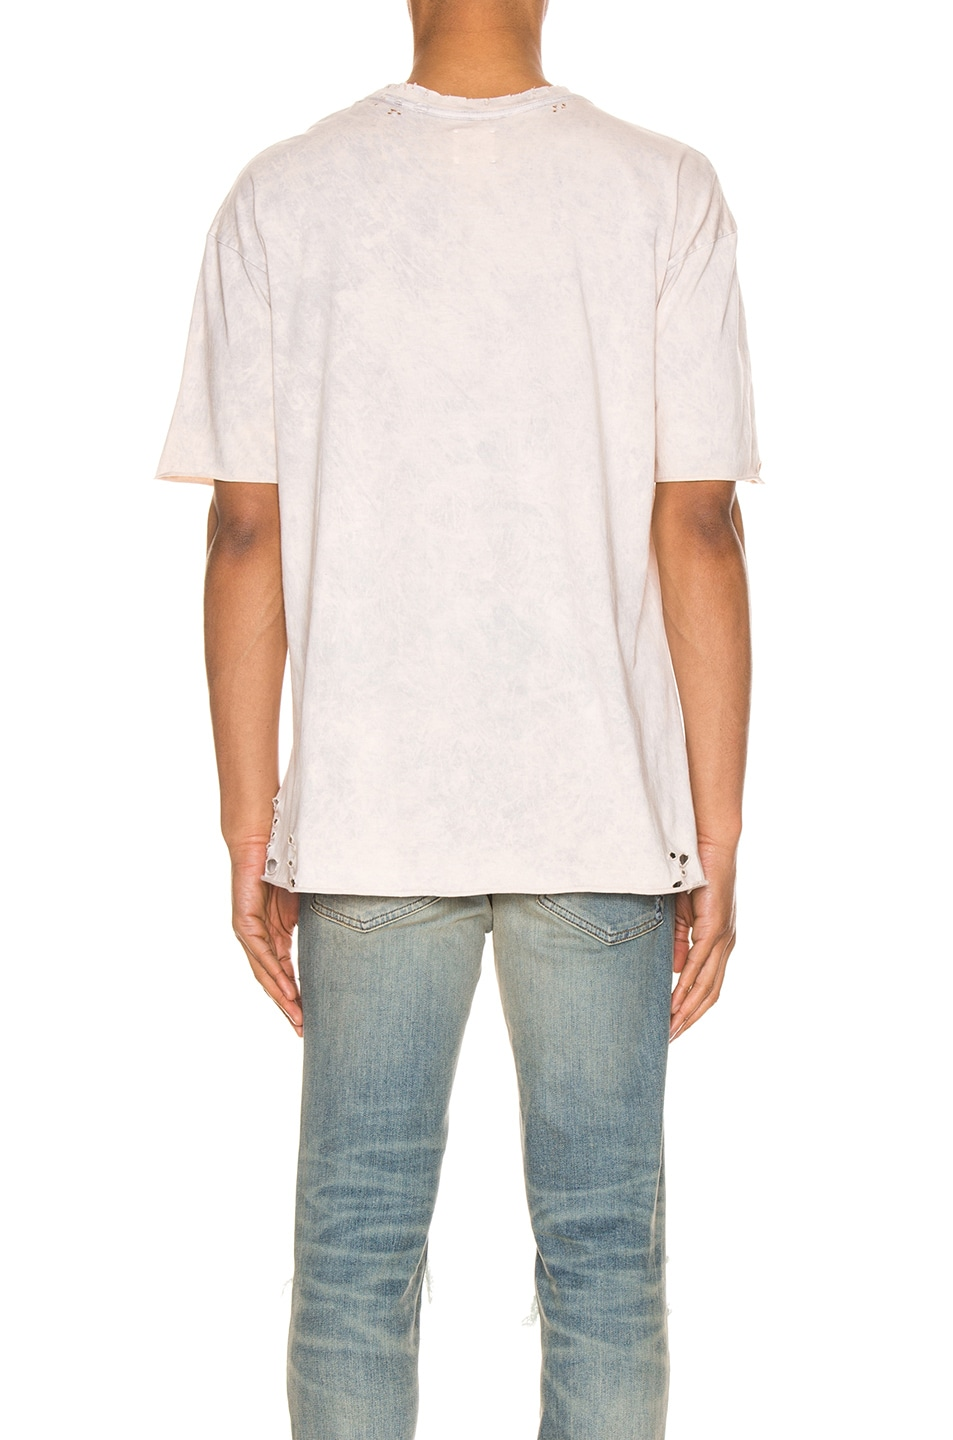 Image 3 of Alchemist x Guess Tee in Dirty Cream